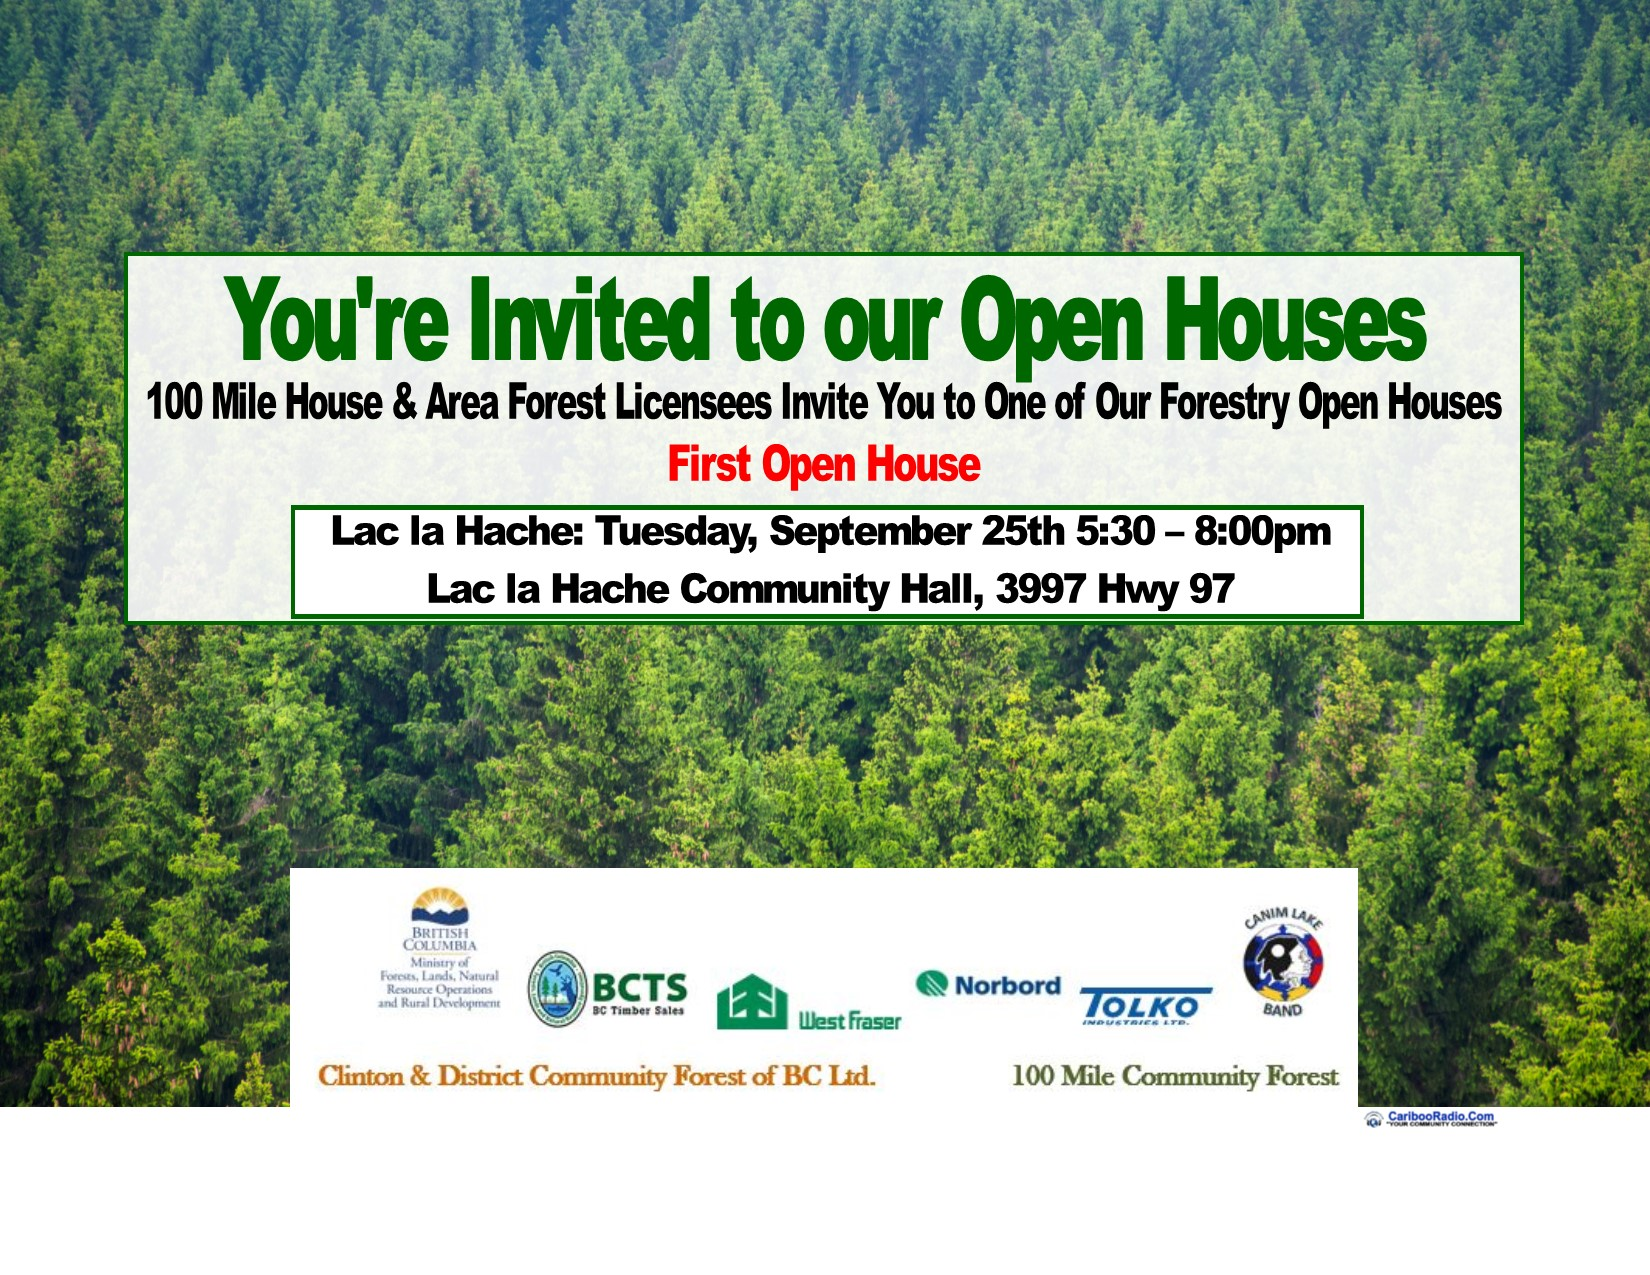 5 forestry Open Houses Coming to 100 Mile House and Area in